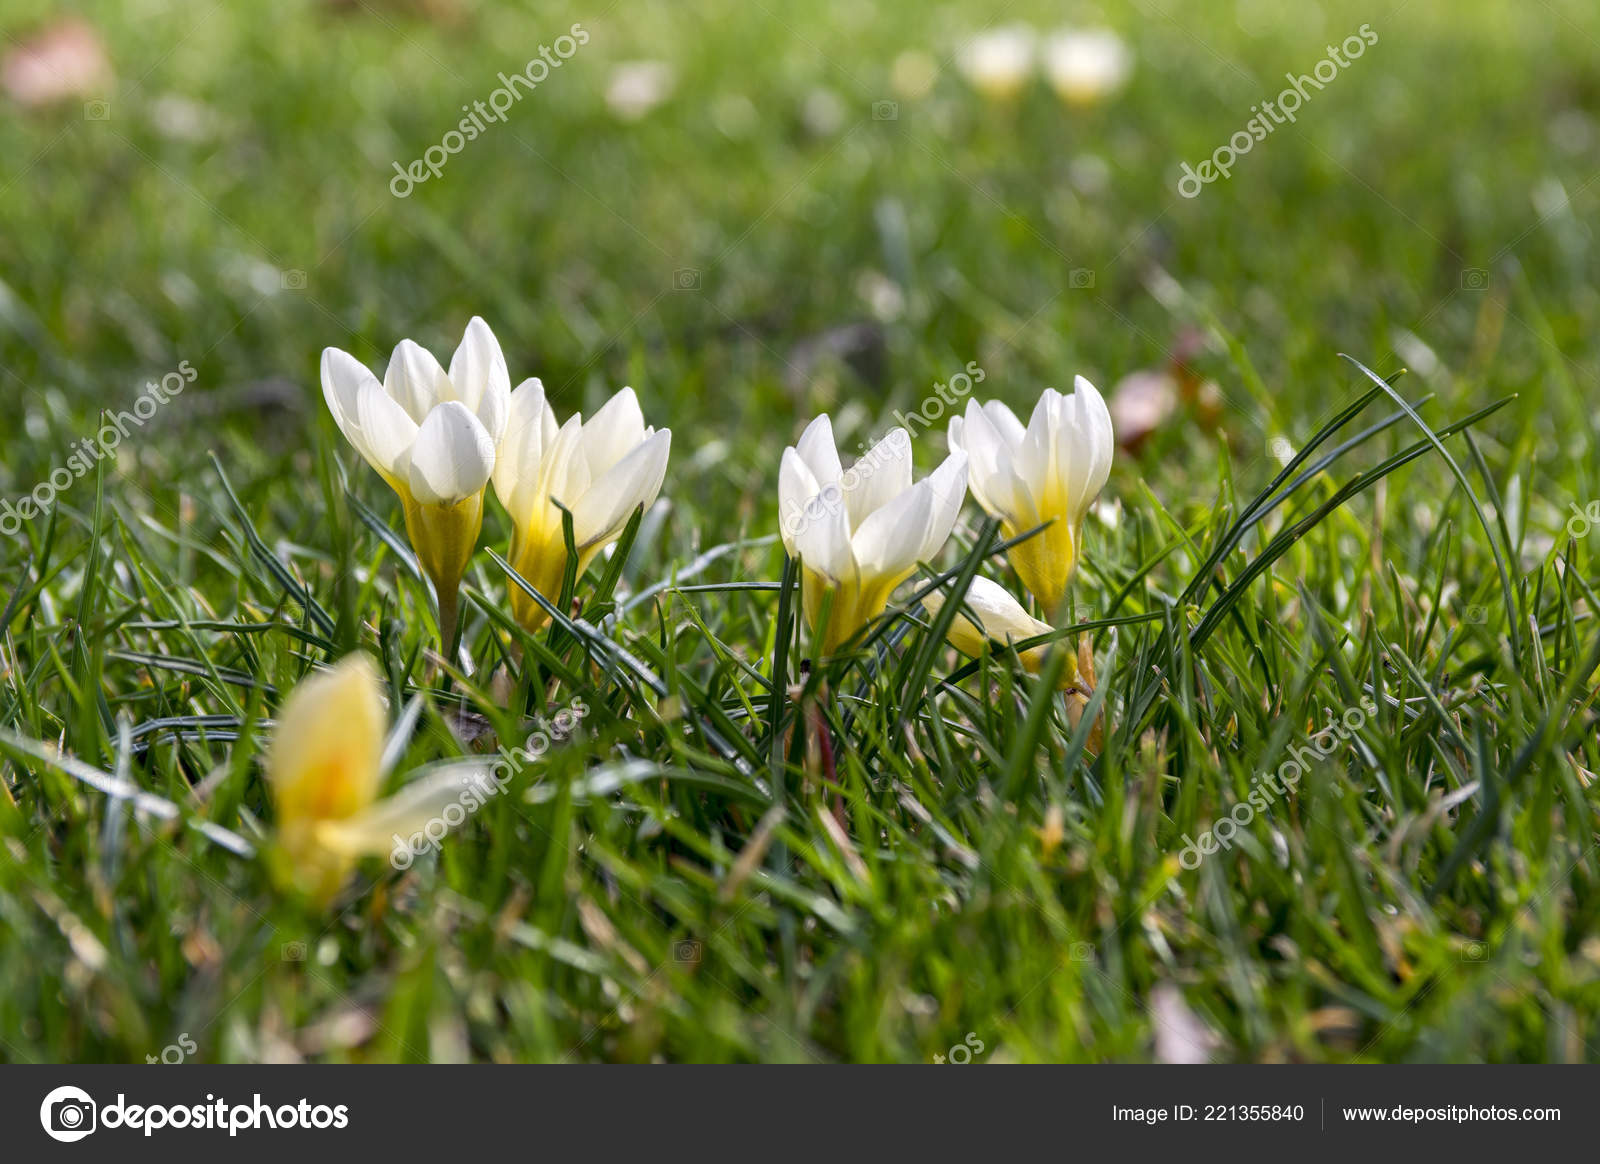 Crocus Vernus Starting Bloom Yellow White Flowers Lawn Stock Photo